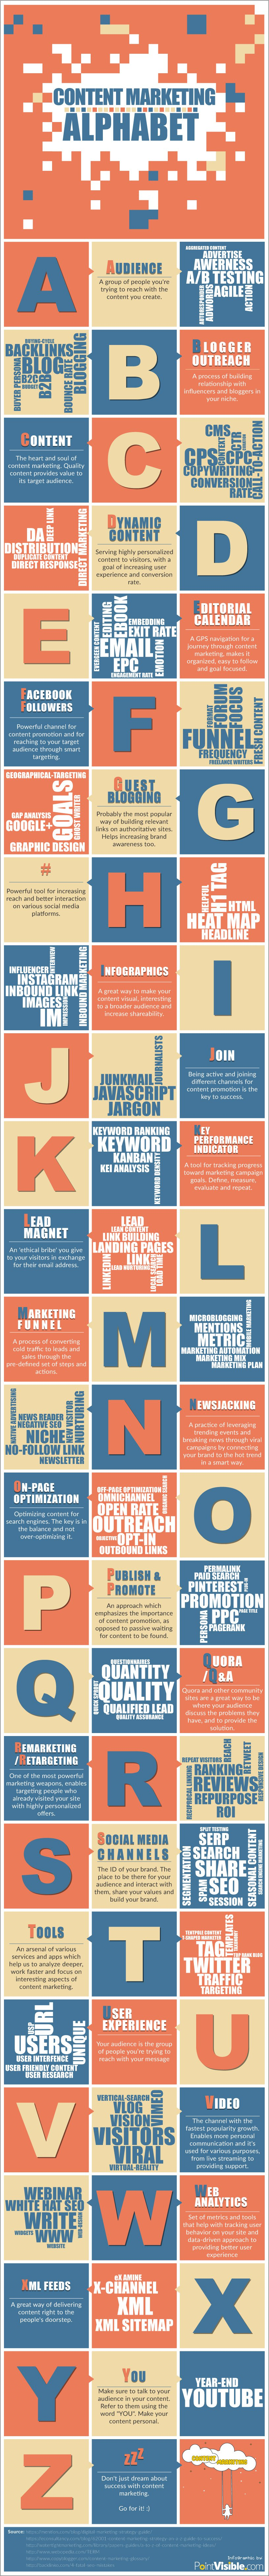 Content-Marketing-Alphabet-Infographic.jpg